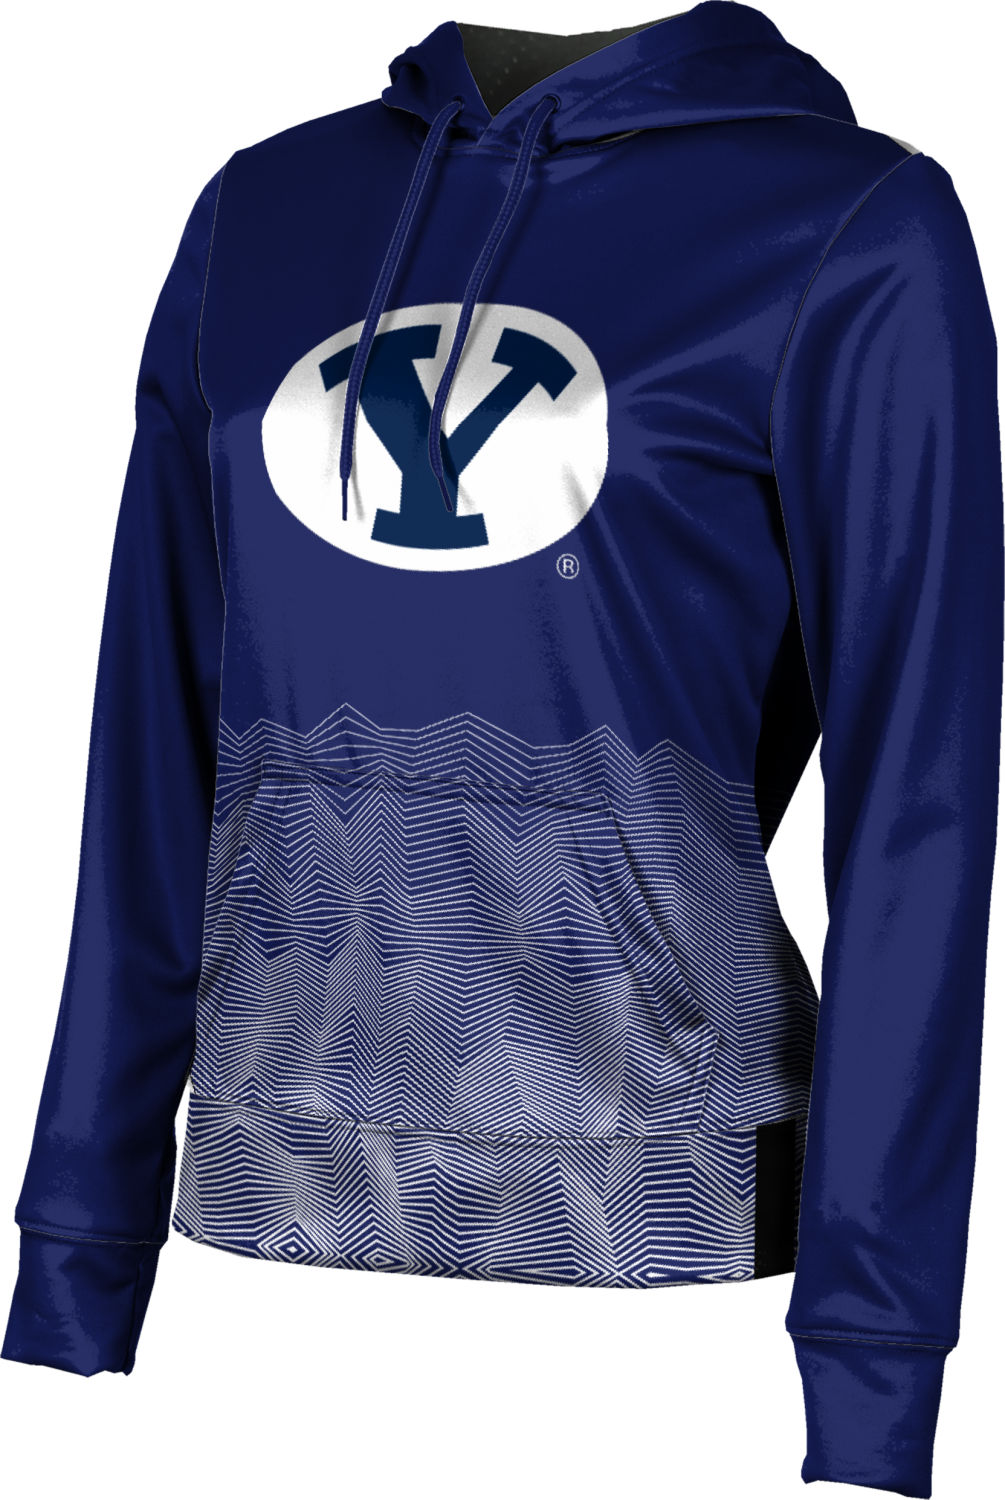 Brigham Young University: Women's Pullover Hoodie - Warp